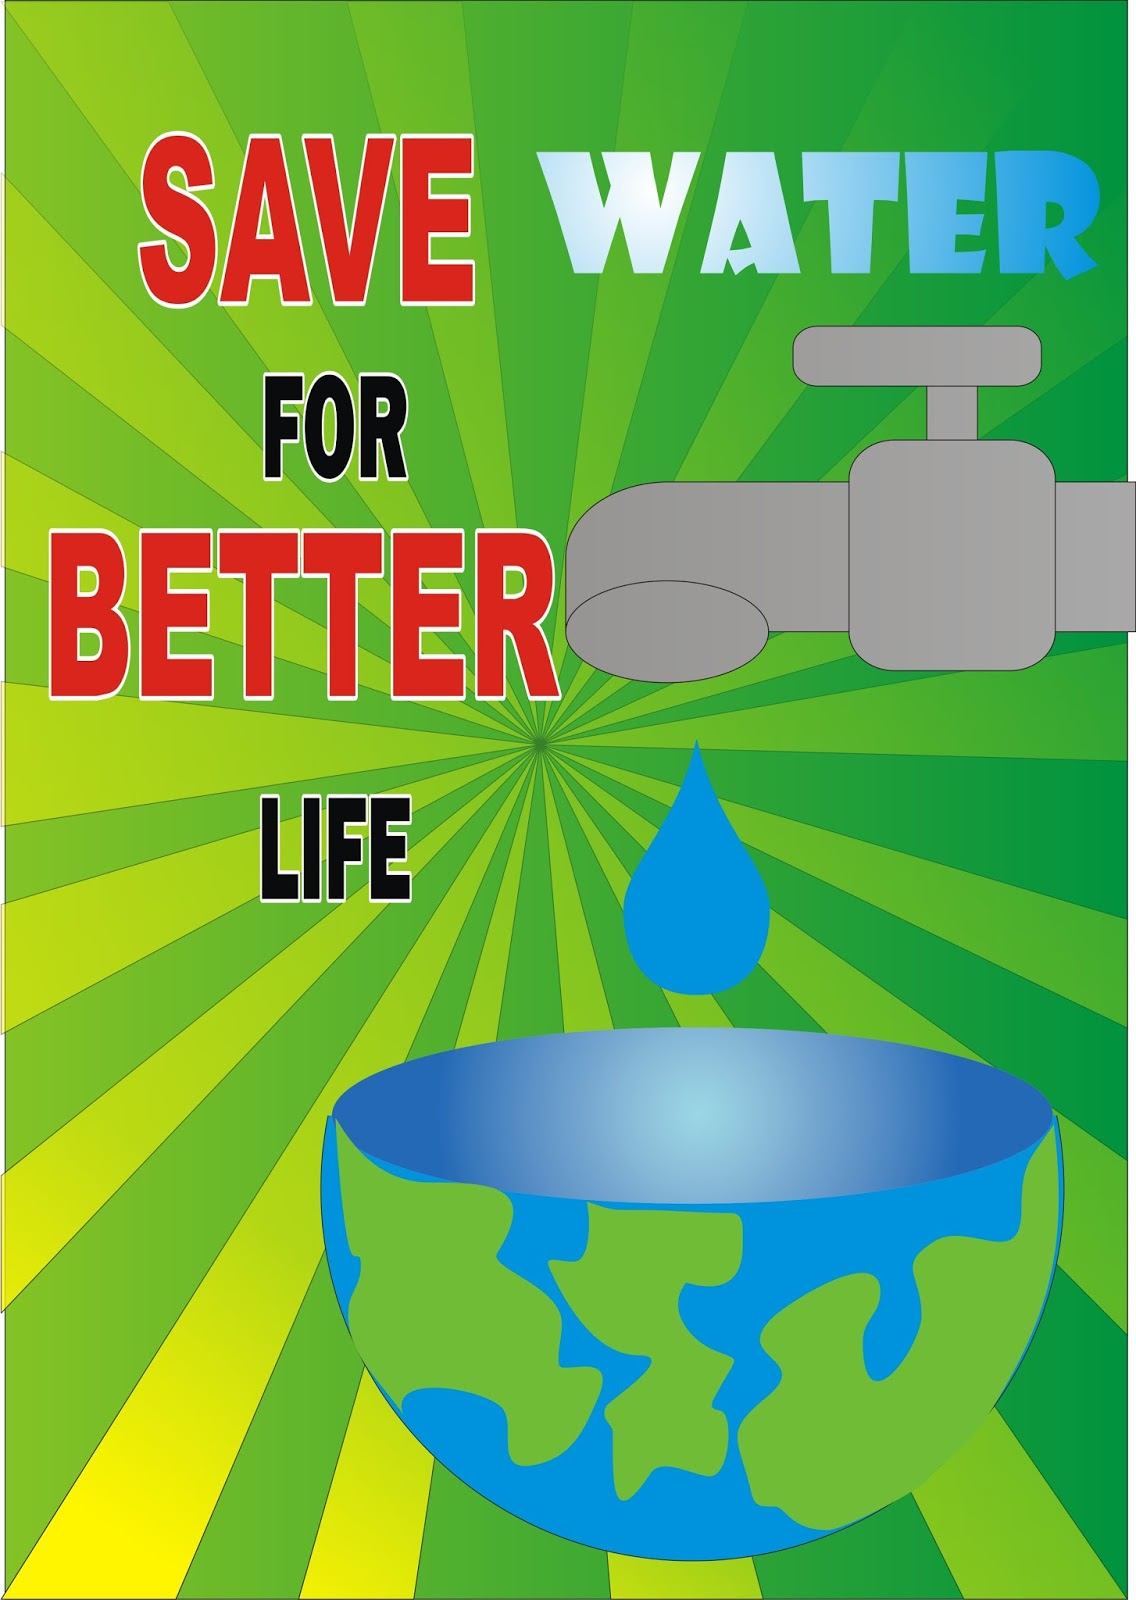 SAVE WATER FOR BETTER LIFE